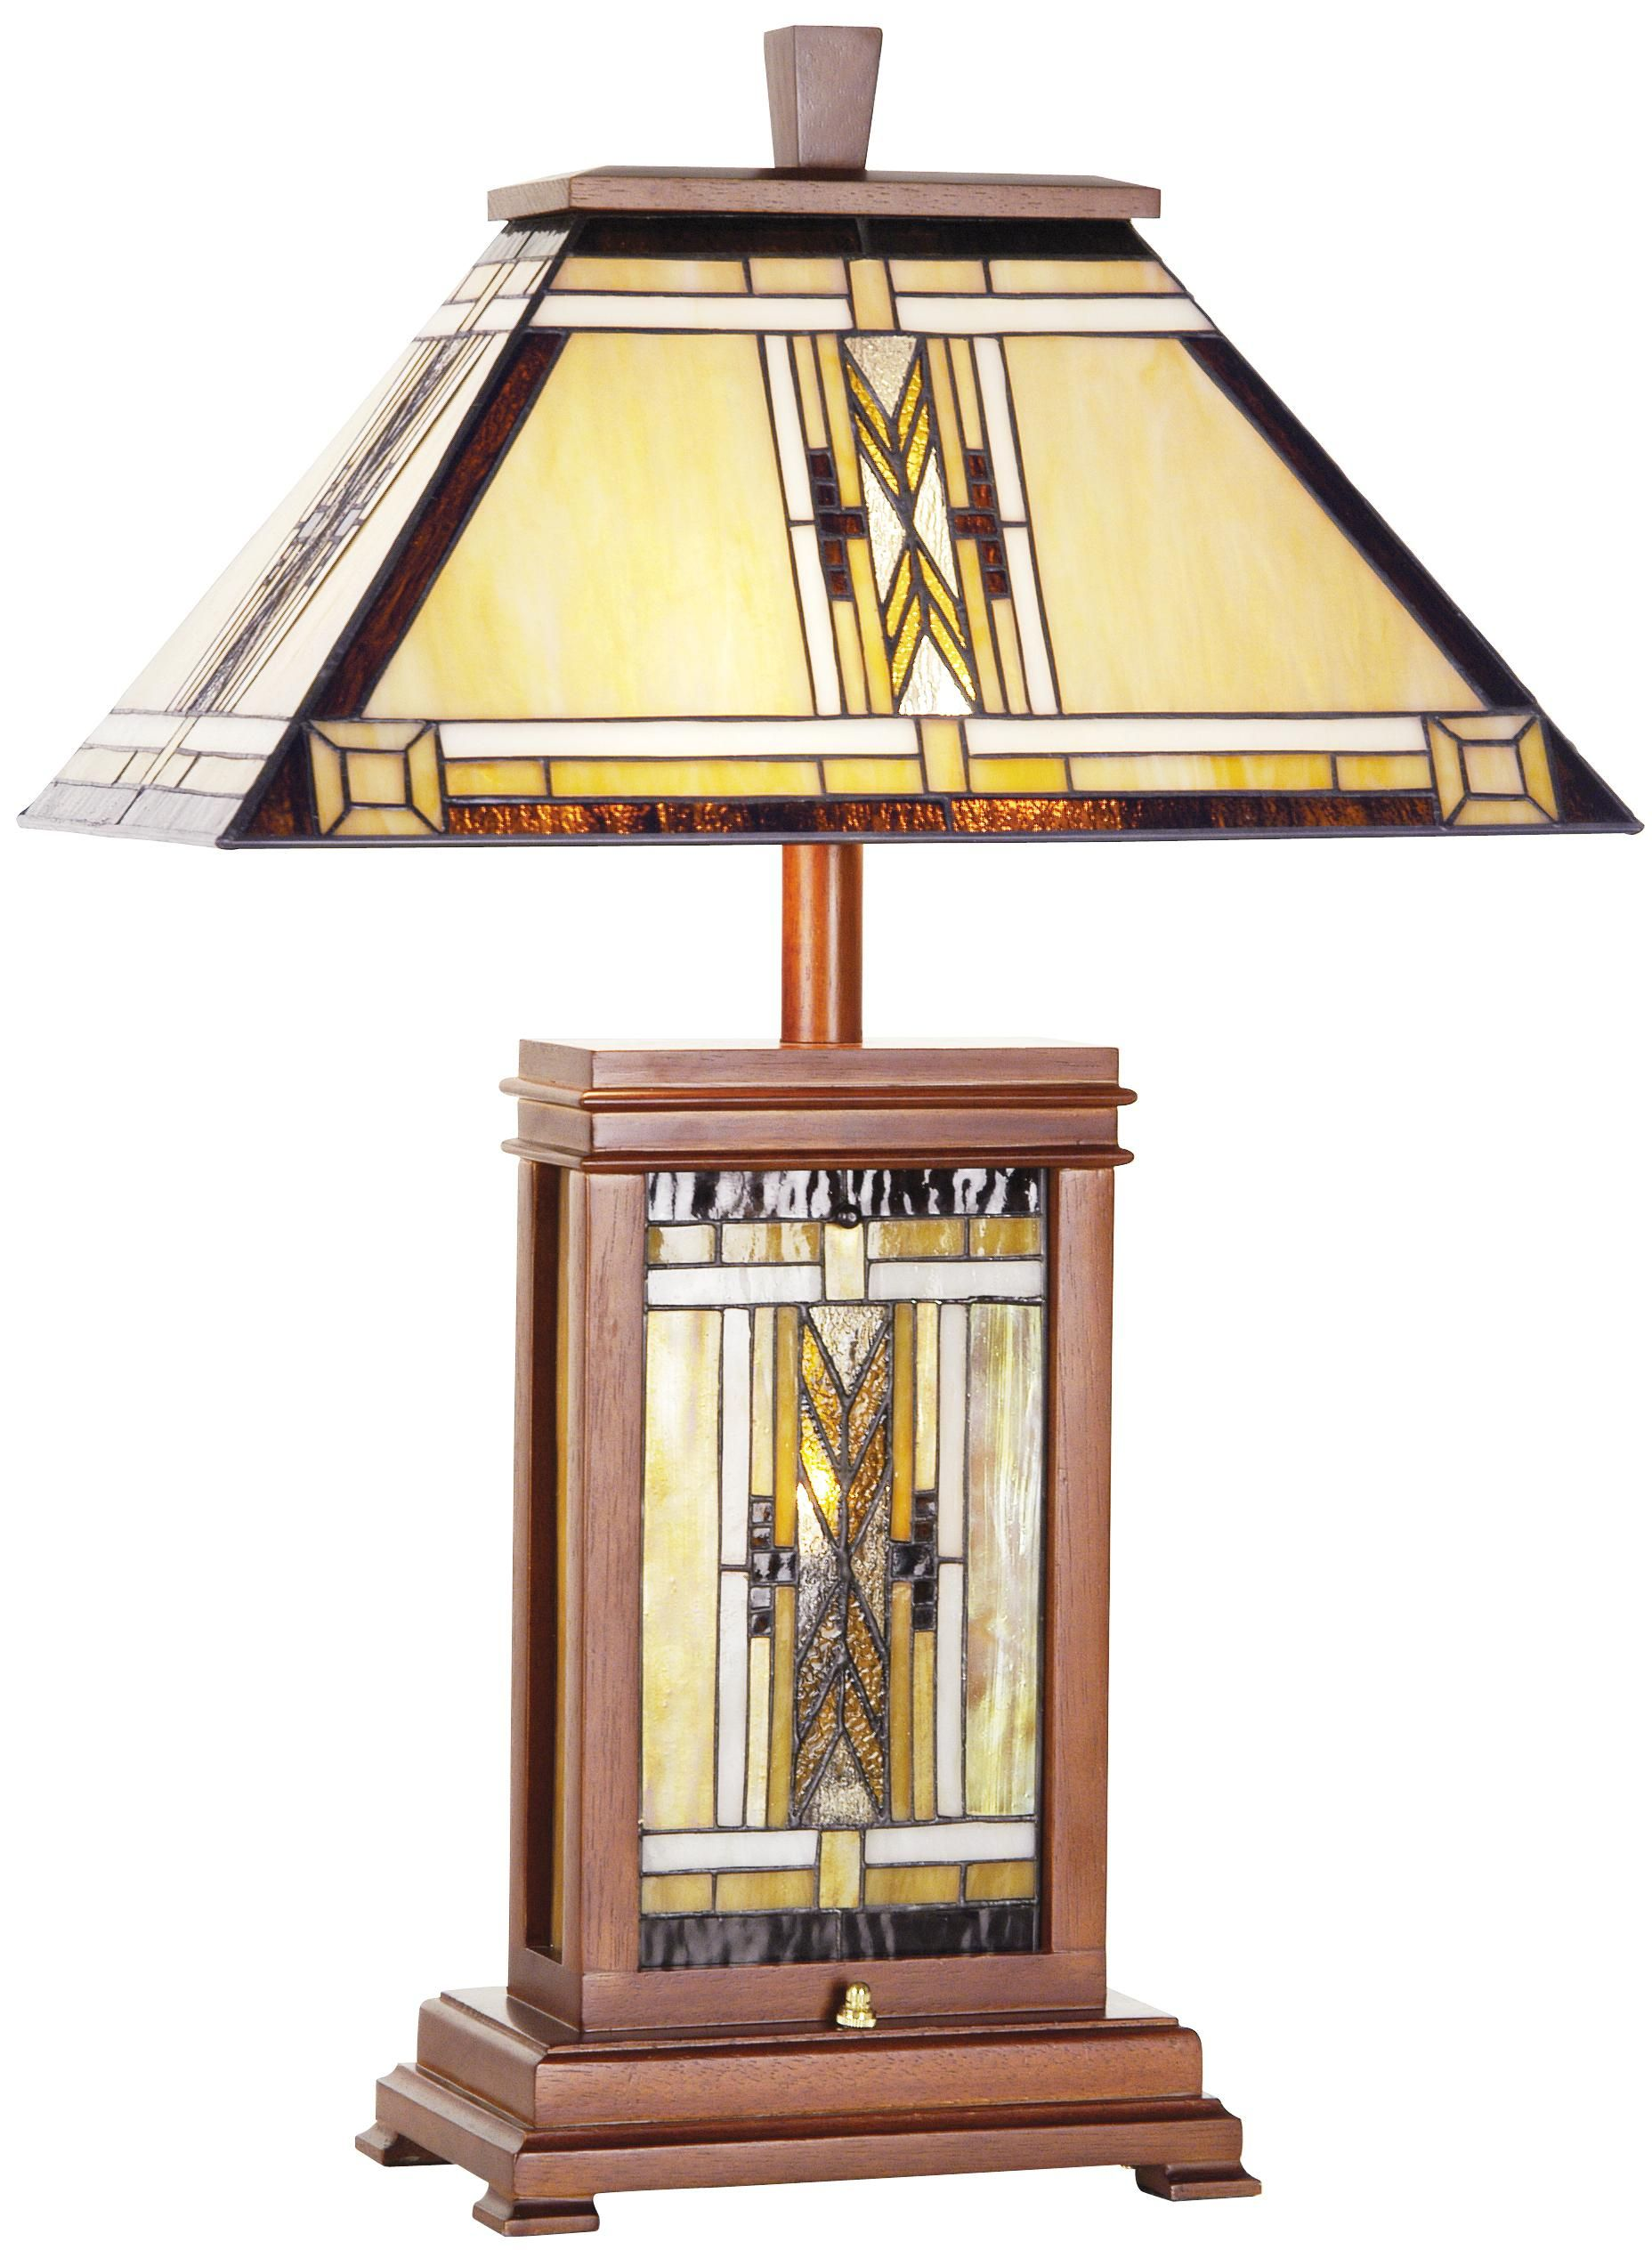 Walnut Mission Collection Tiffany Style Table Lamp 29553 Lamps Plus Tiffany Style Floor Lamps Tiffany Style Table Lamps Rustic Table Lamps